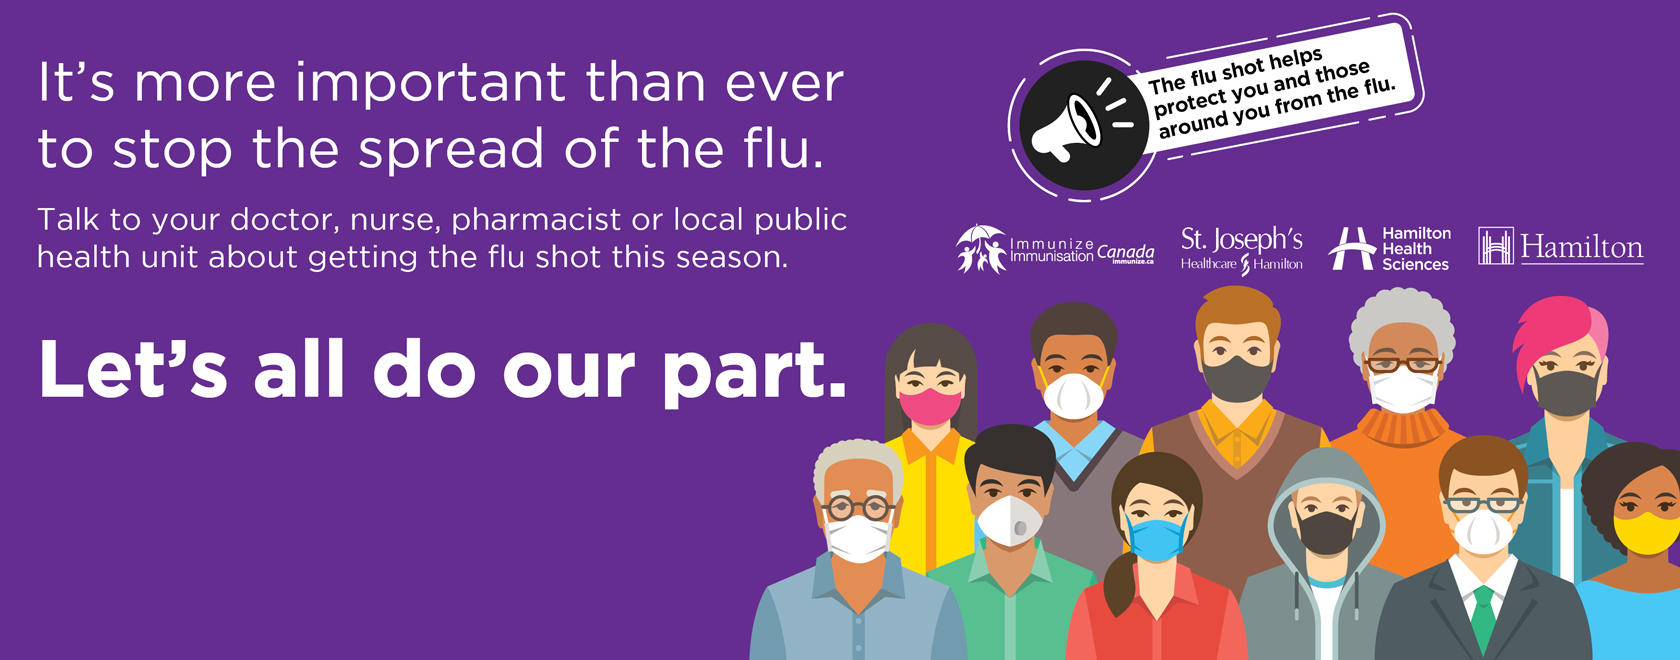 It's more important than ever to stop the spread of the flu.